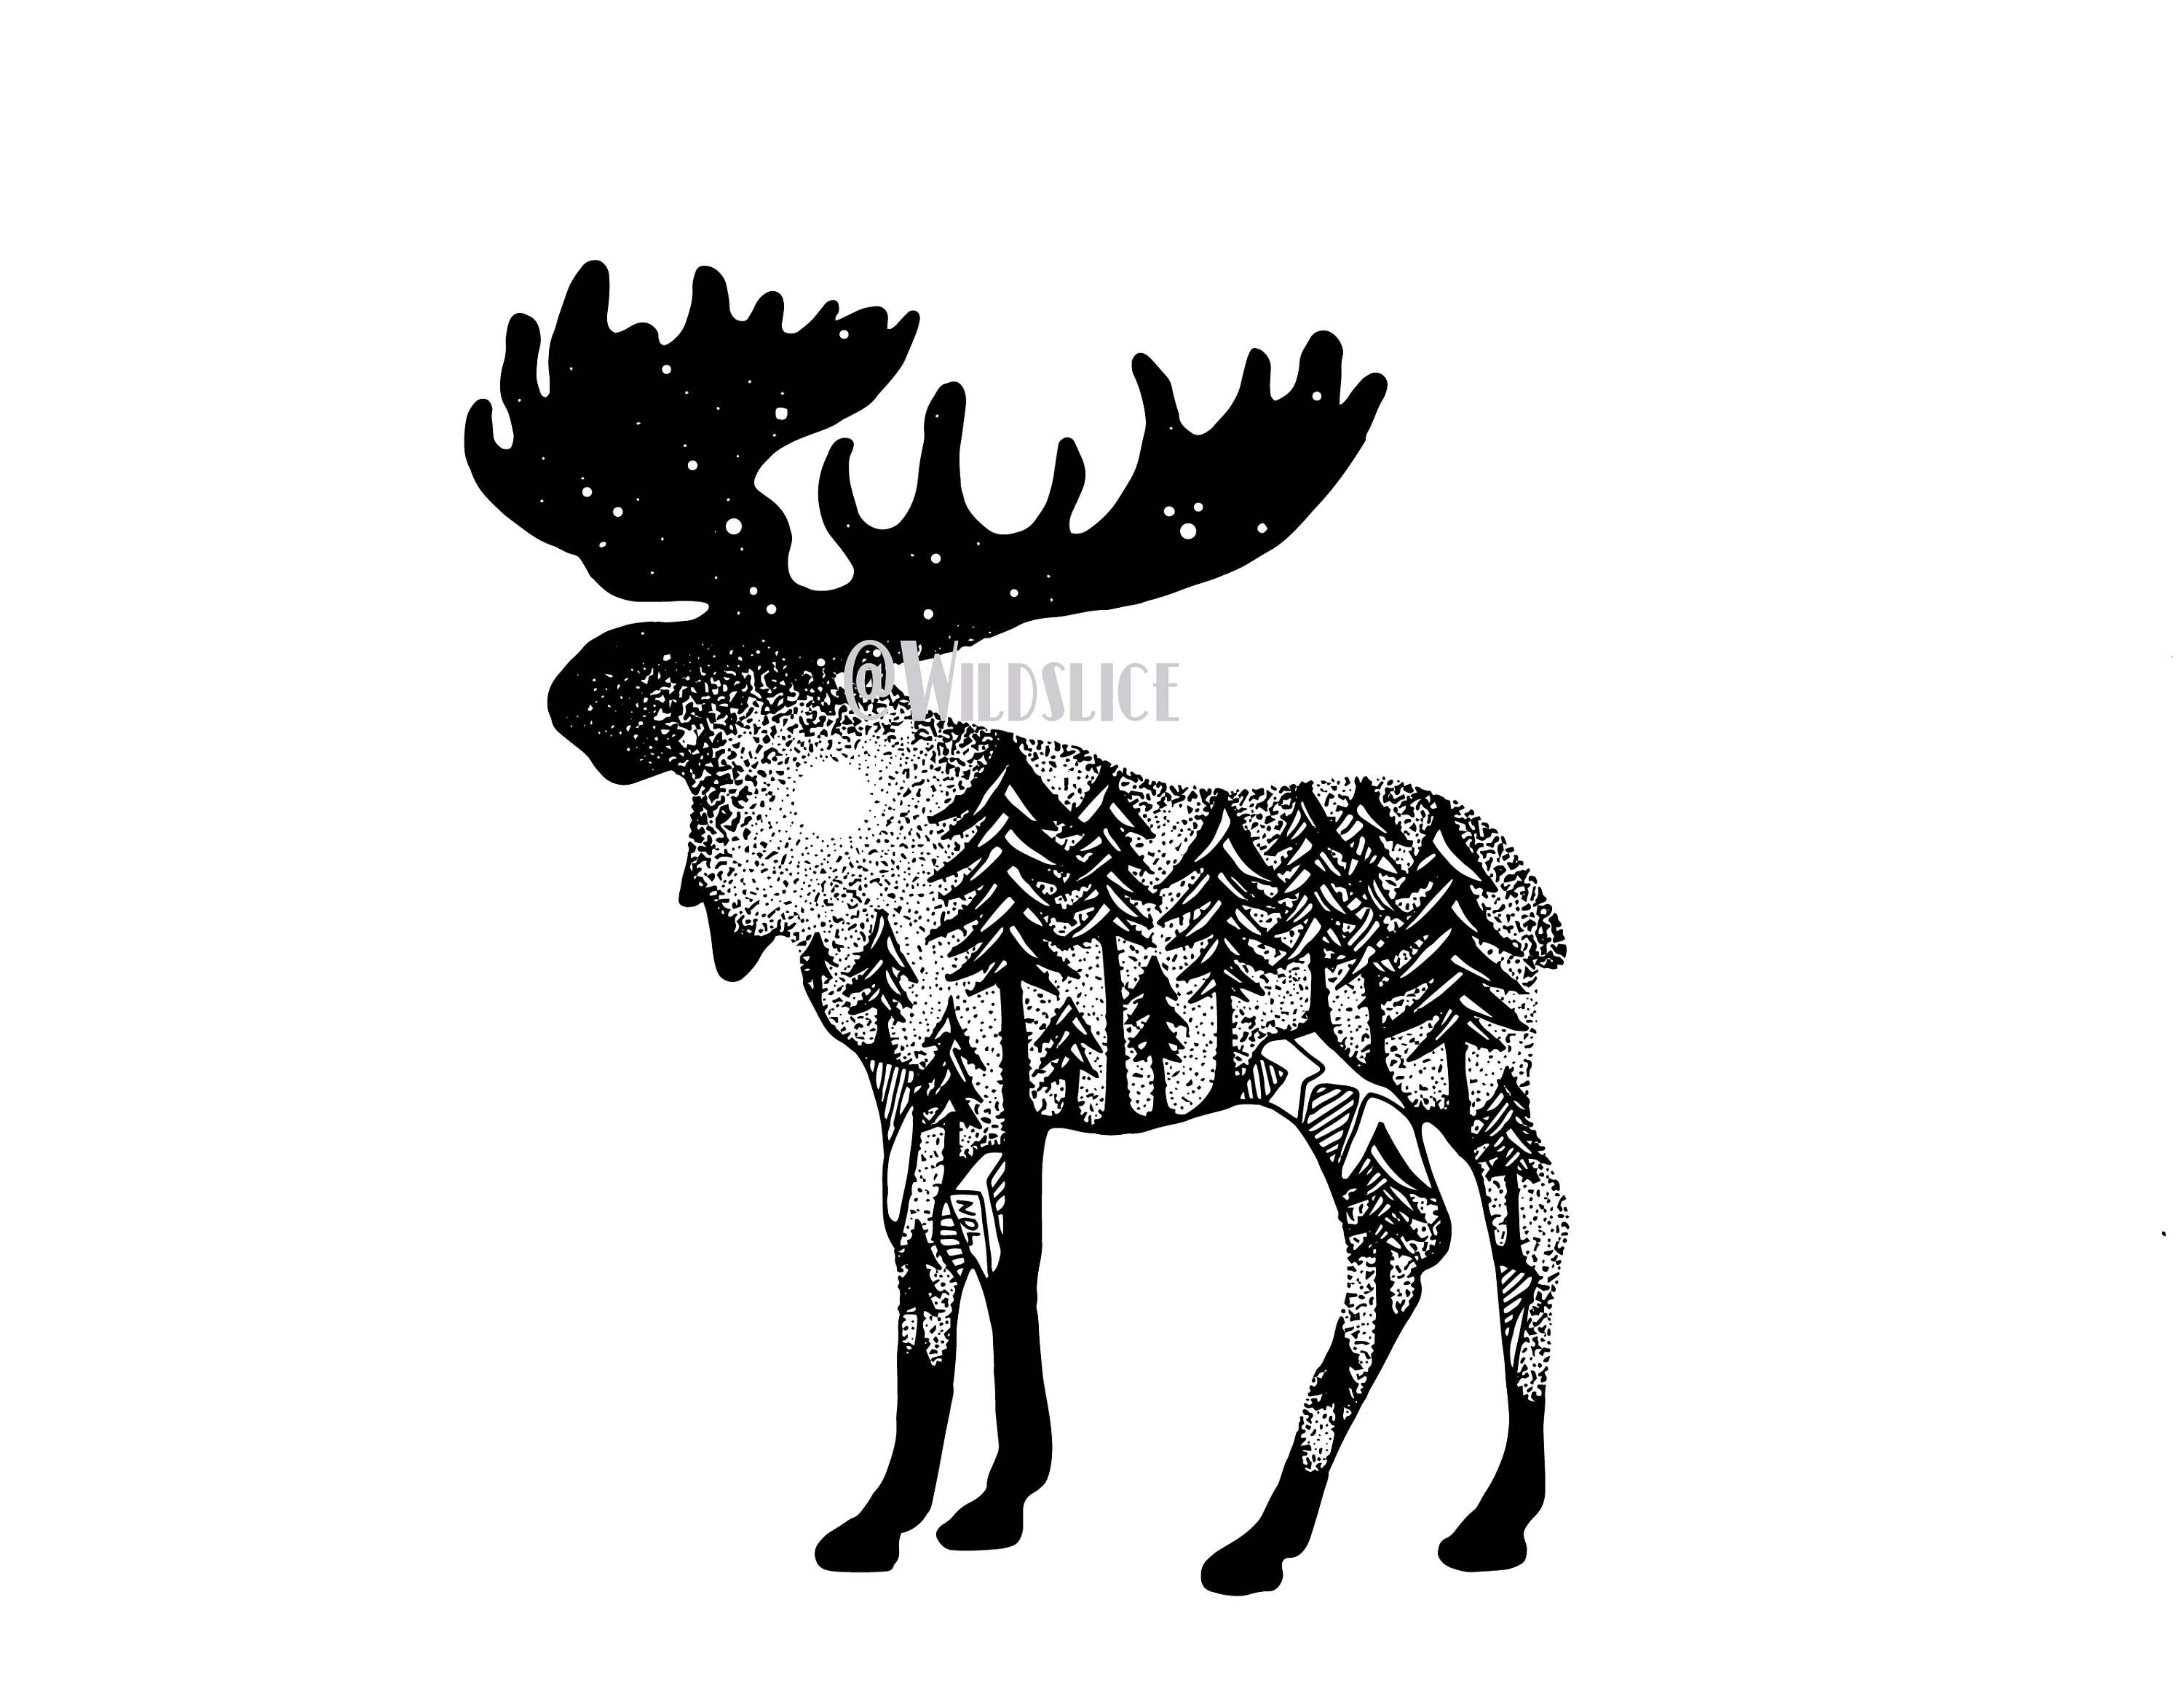 Totem pole clipart black and white moose clip art free download No pine trees, rather mountains | Tattoo | Moose tattoo ... clip art free download